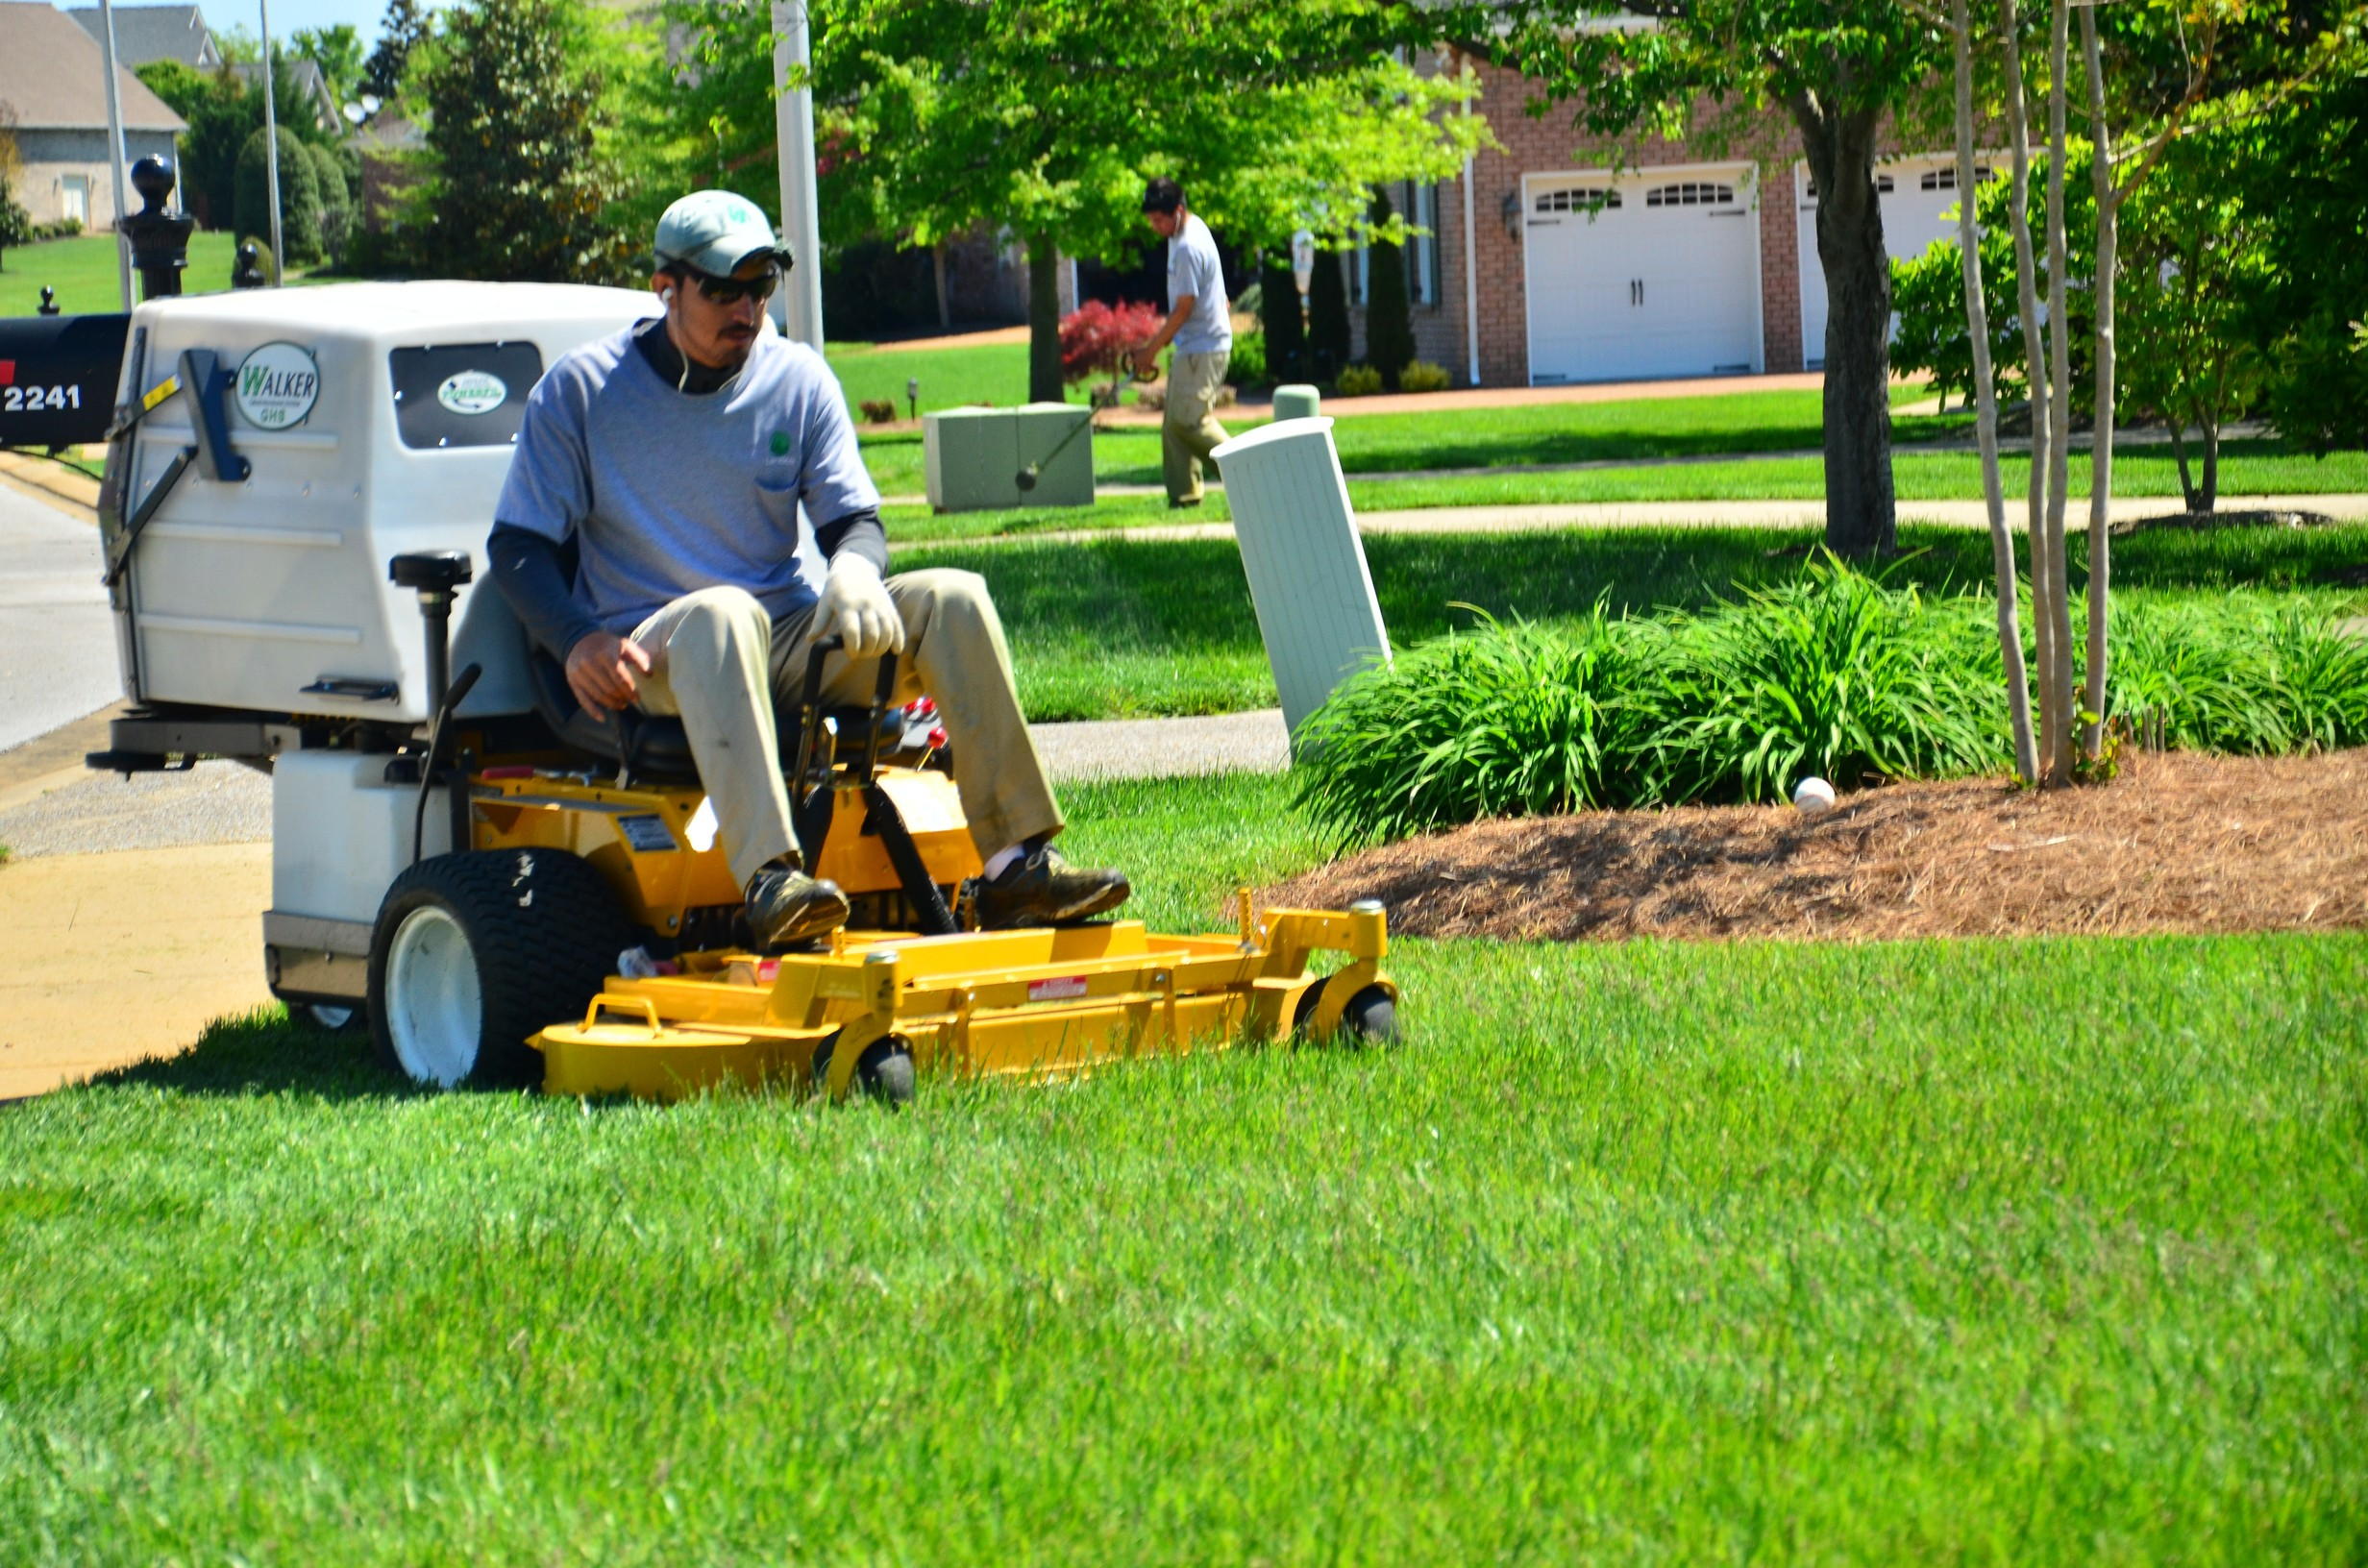 Hiring best lawn care services do these things royal ranch for Best garden maintenance